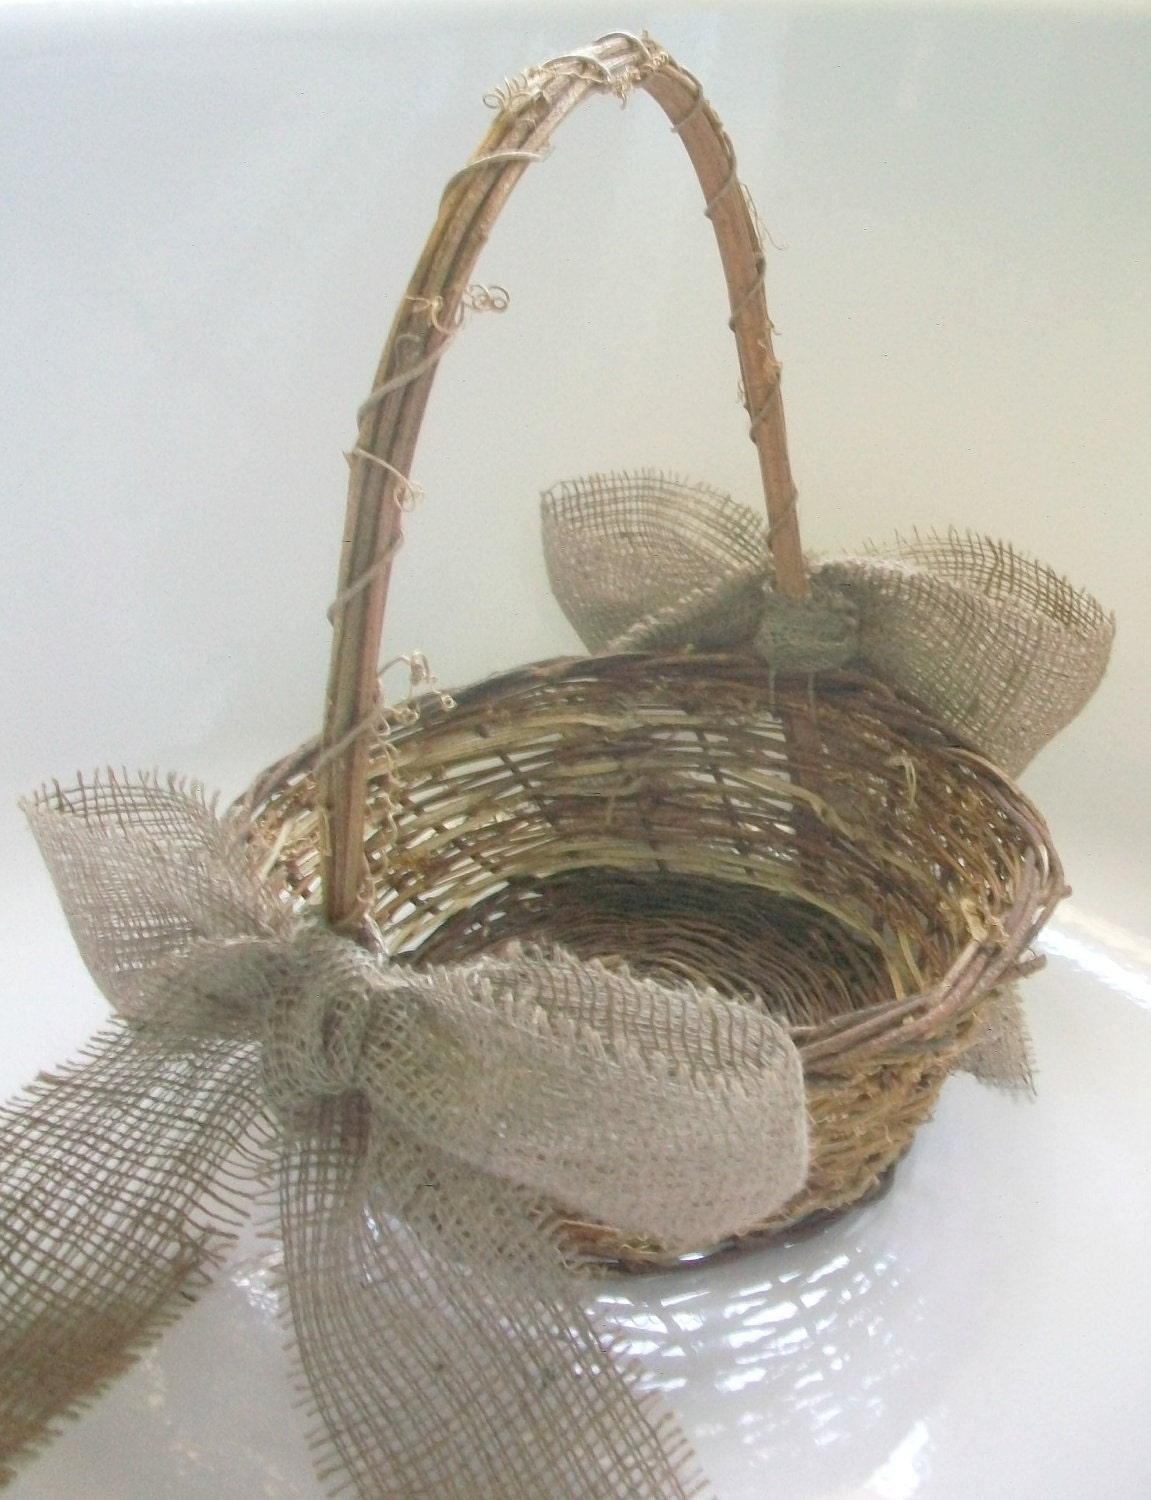 Rustic Burlap Flower Girl Baskets : Burlap flower girl basket rustic natural twig wedding